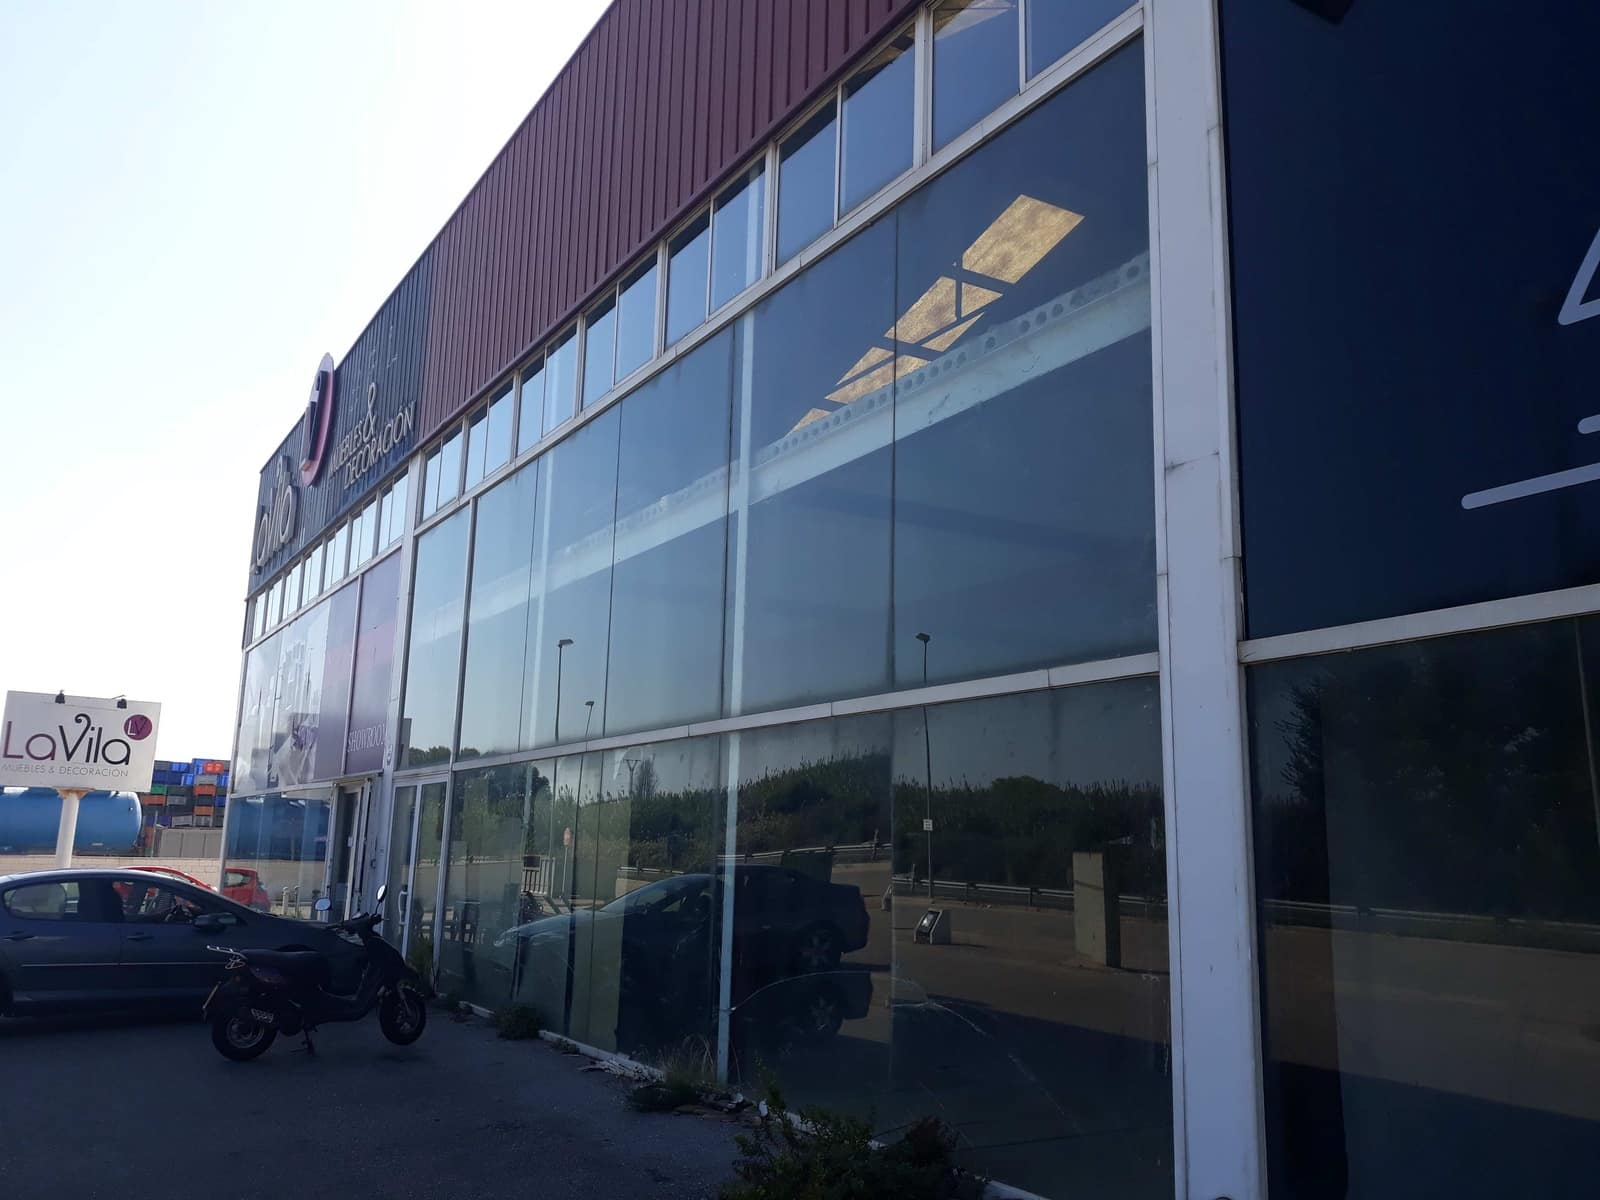 Commercial for sale in Oliva - € 350,000 (Ref: 5876078)